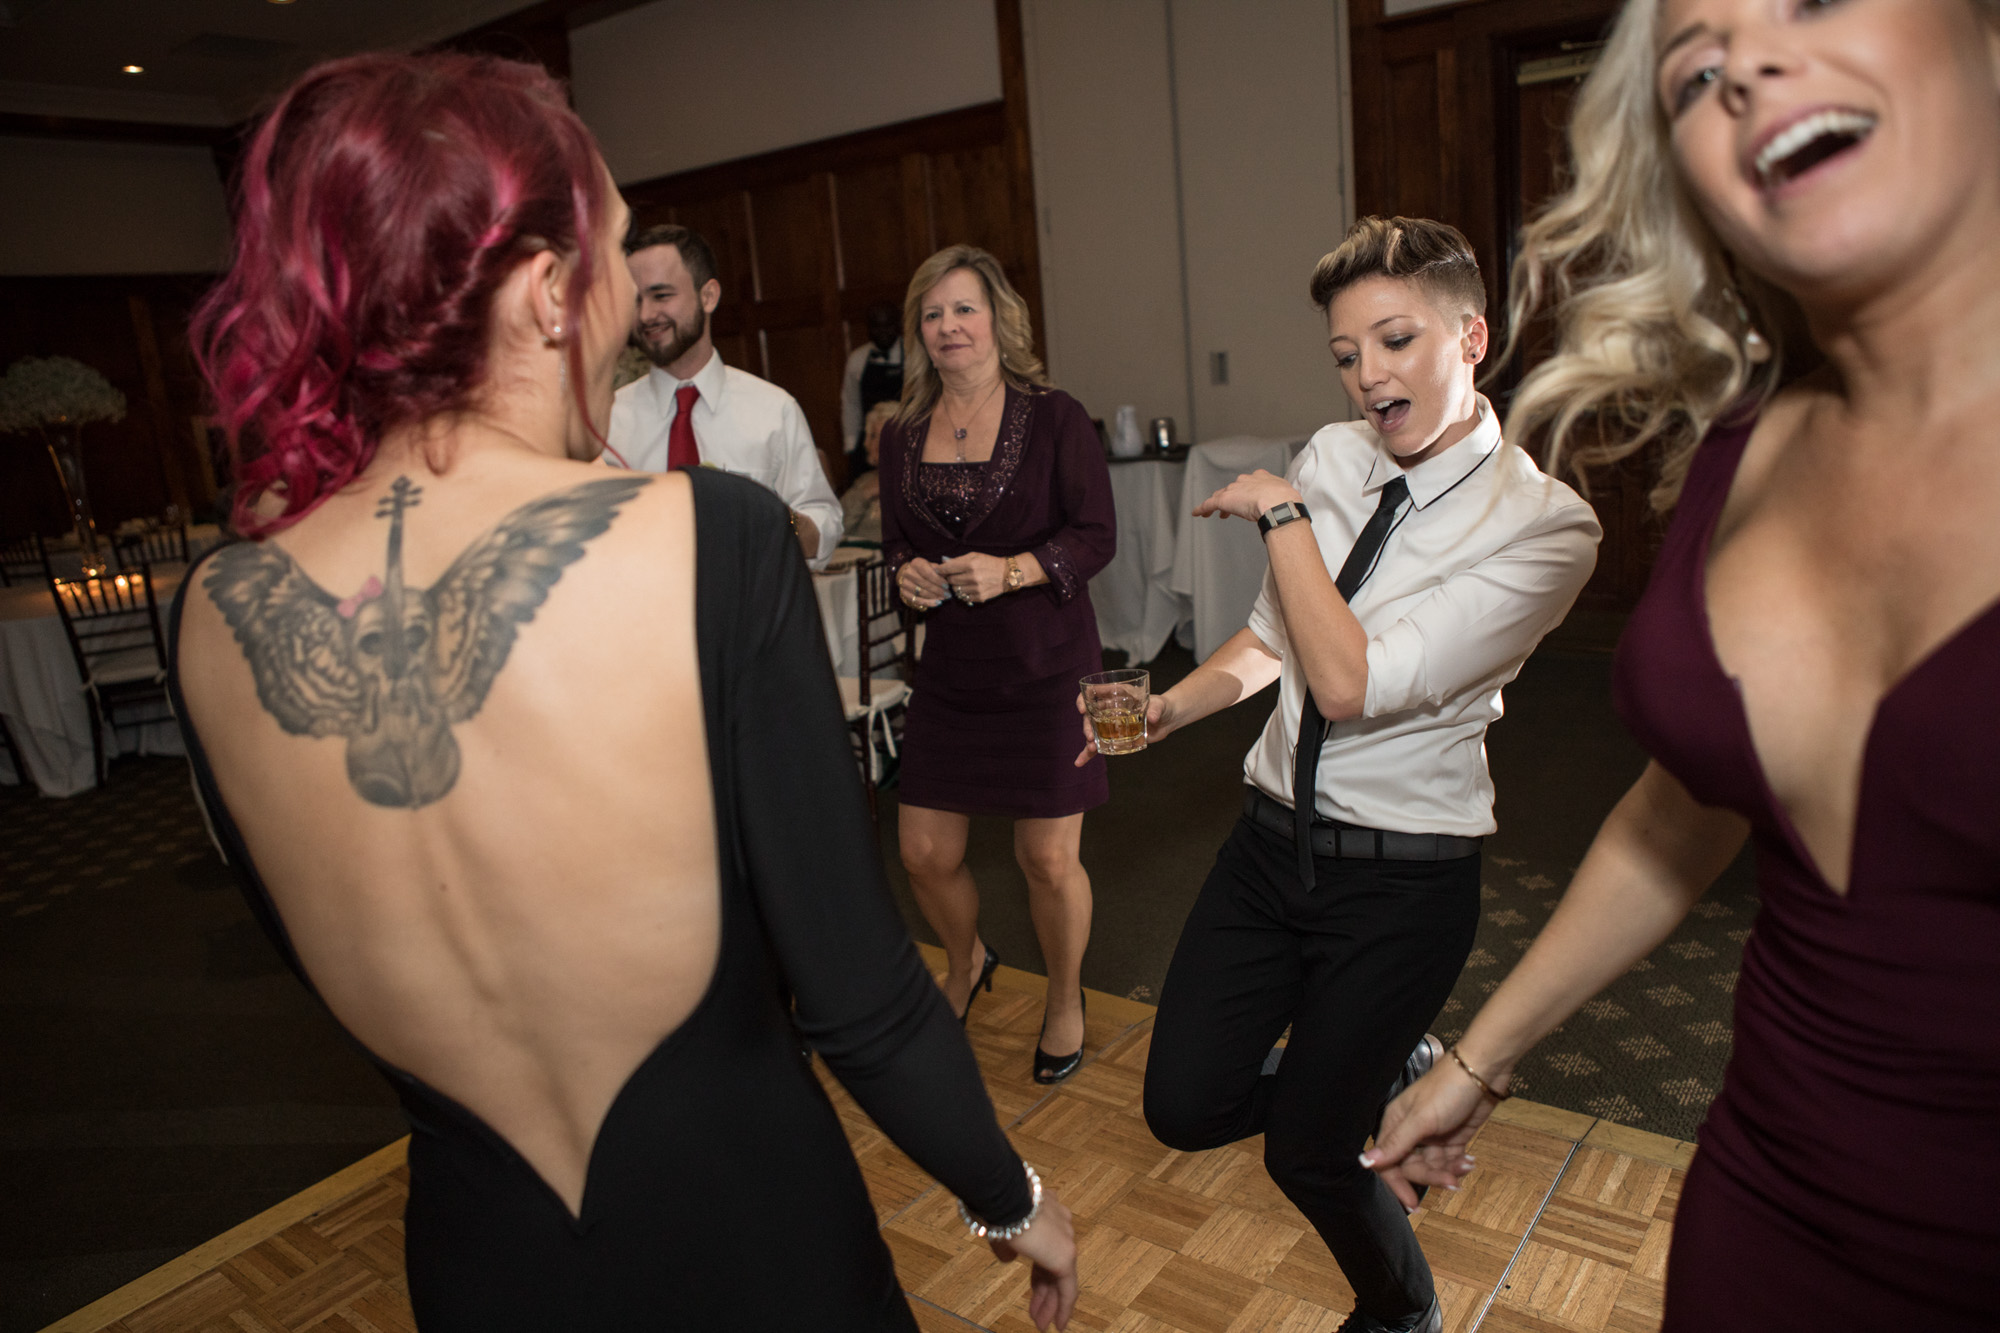 scranton_wedding_photographer_lettieri_pa (13 of 15).jpg